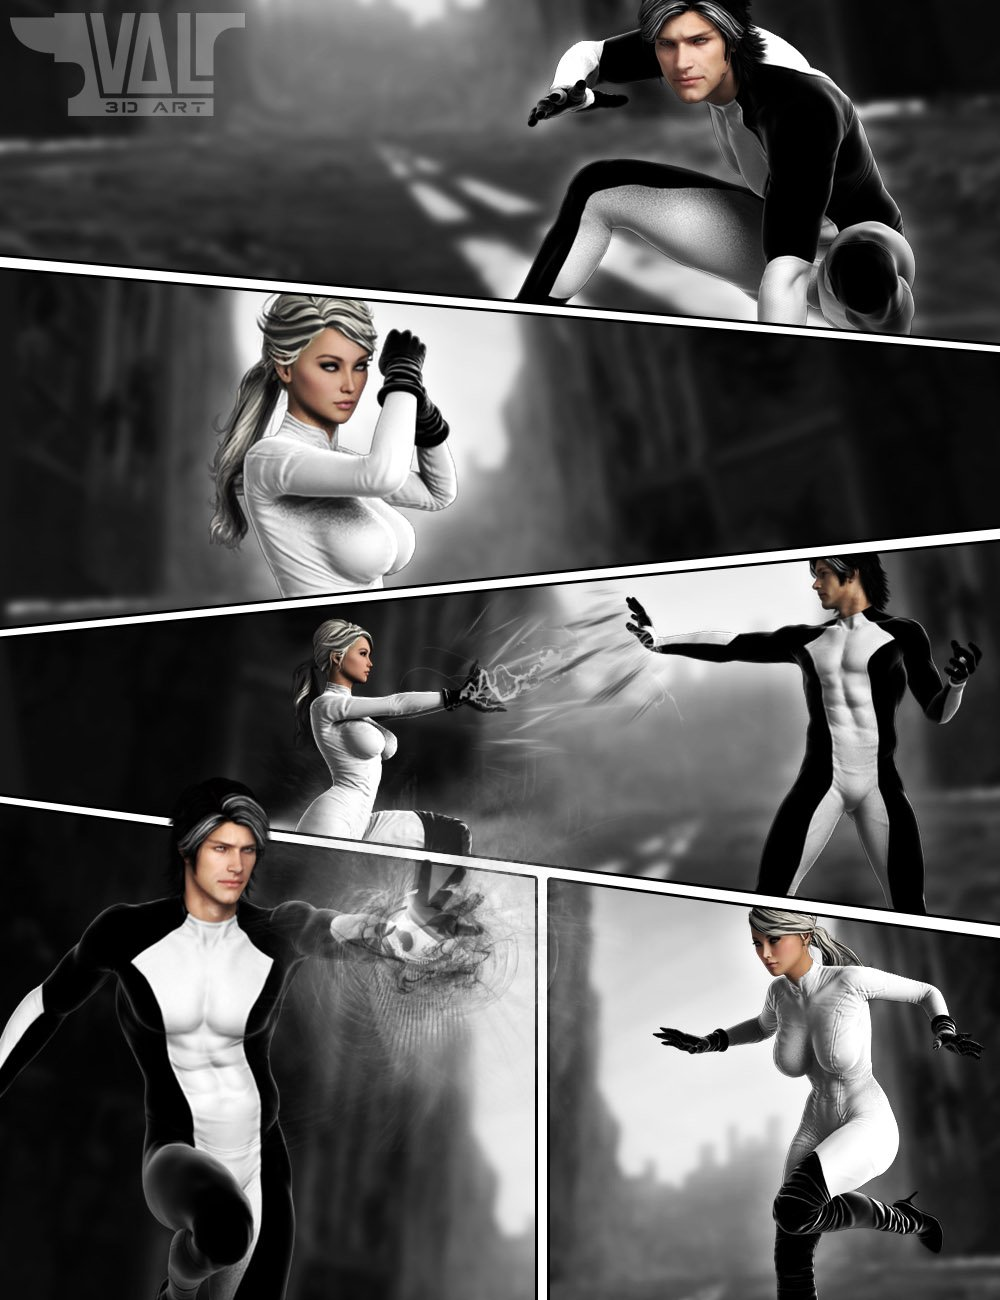 Superhero Poses by: Val3dart, 3D Models by Daz 3D